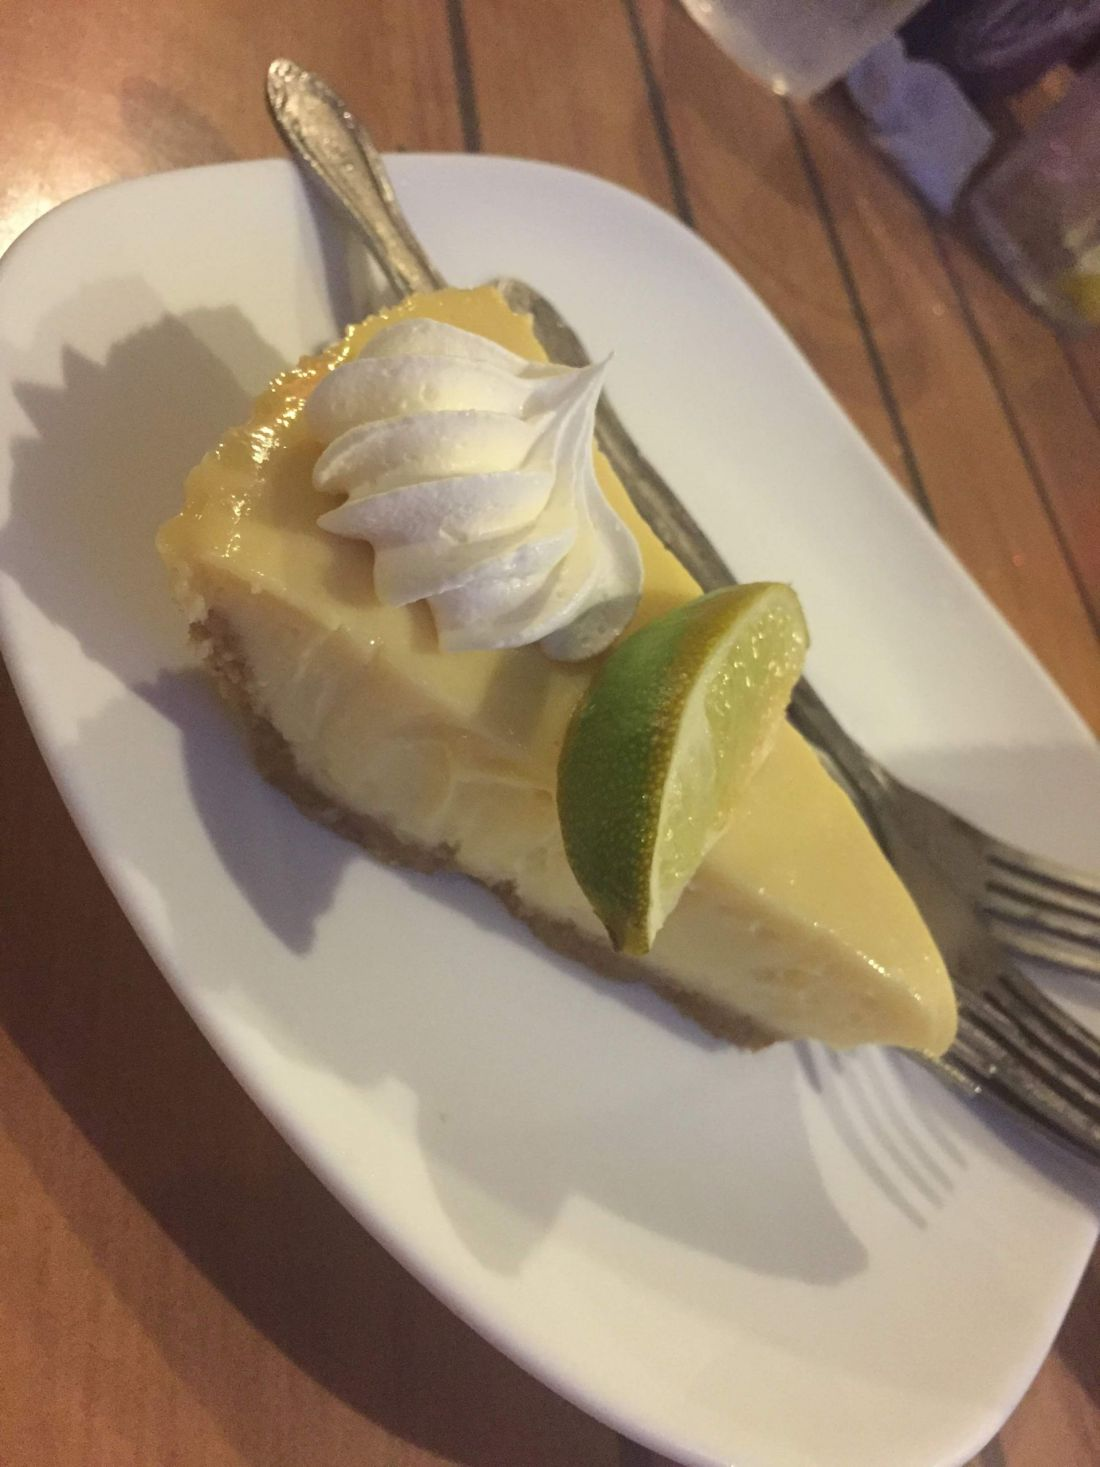 Key lime pie at Crabby Bill's